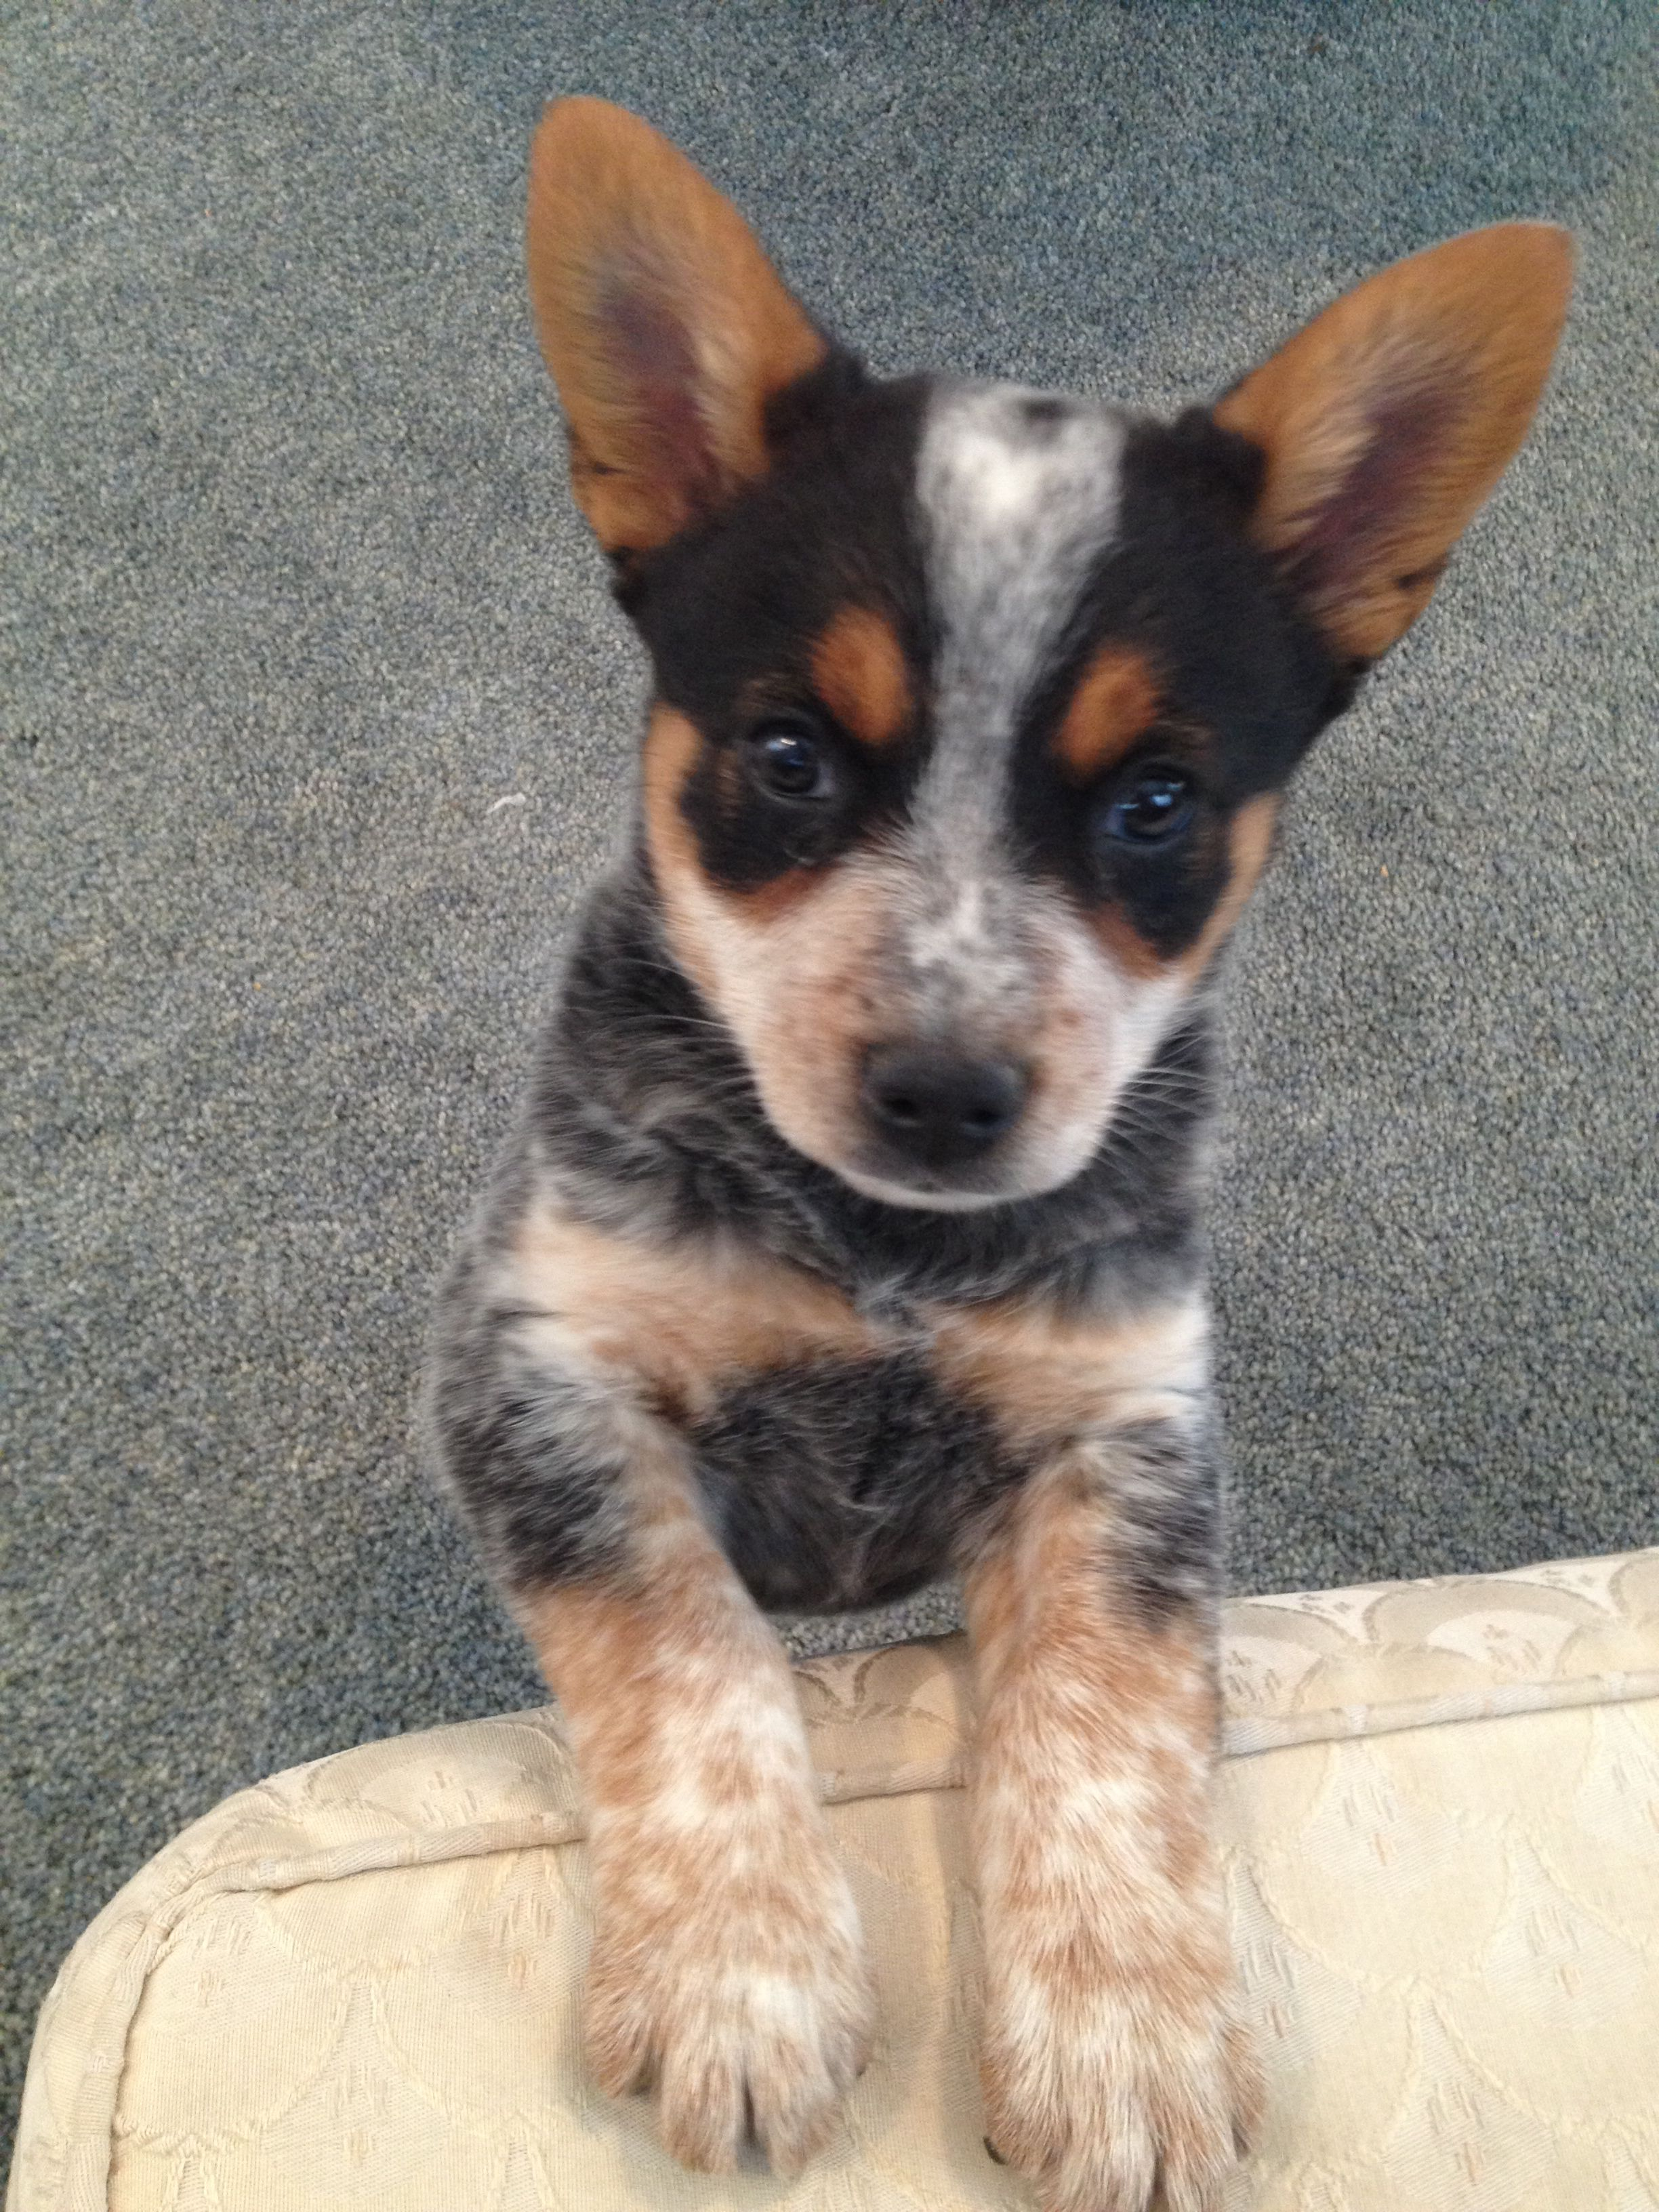 The Cutest Blue Heeler Puppy I Ve Ever Seen But I M A Little Bias Blue Heeler Puppies Heeler Puppies Blue Heeler Dogs